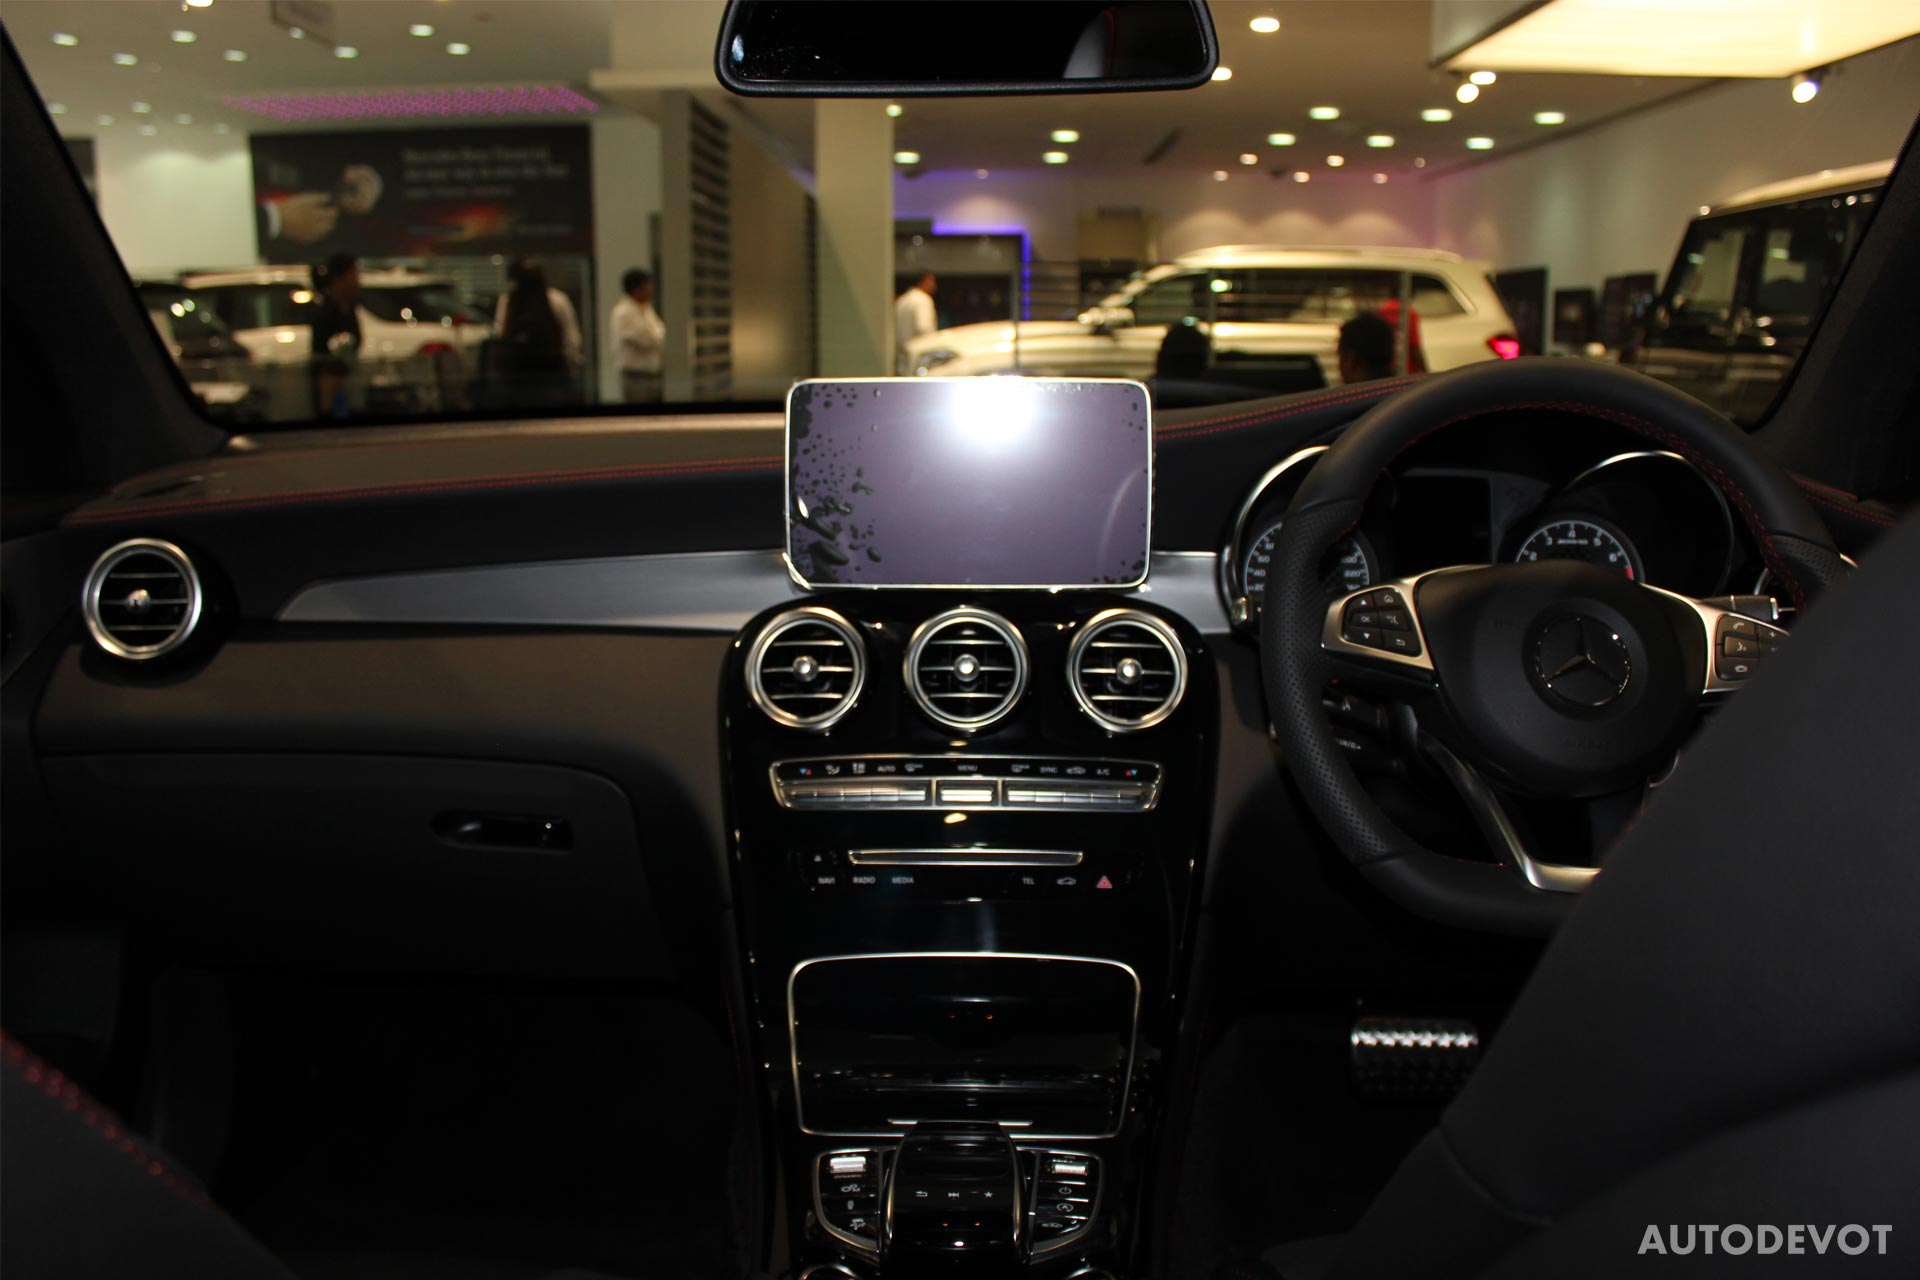 Mercedes-AMG-GLC-43-Coupe-interior_3